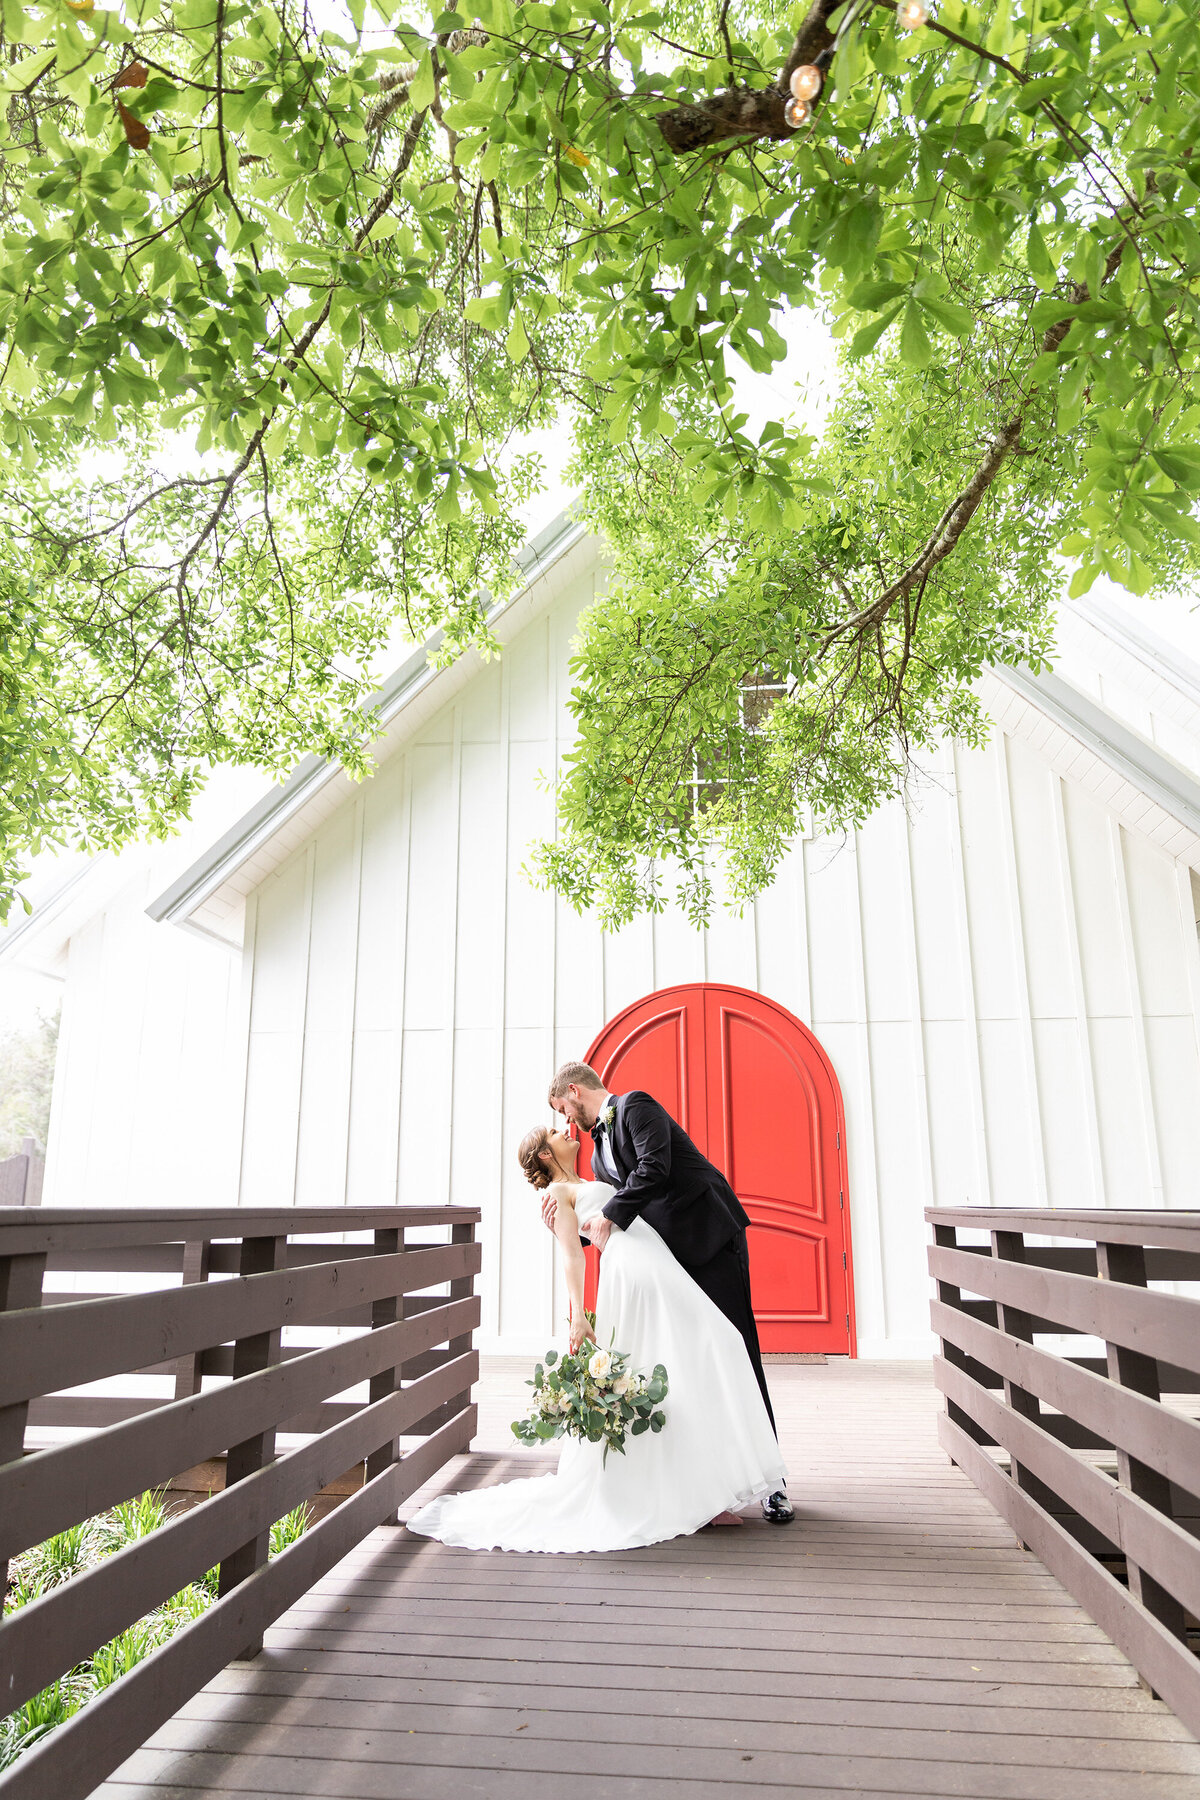 Bride and Groom Classic Dip Portrait at The Carriage House